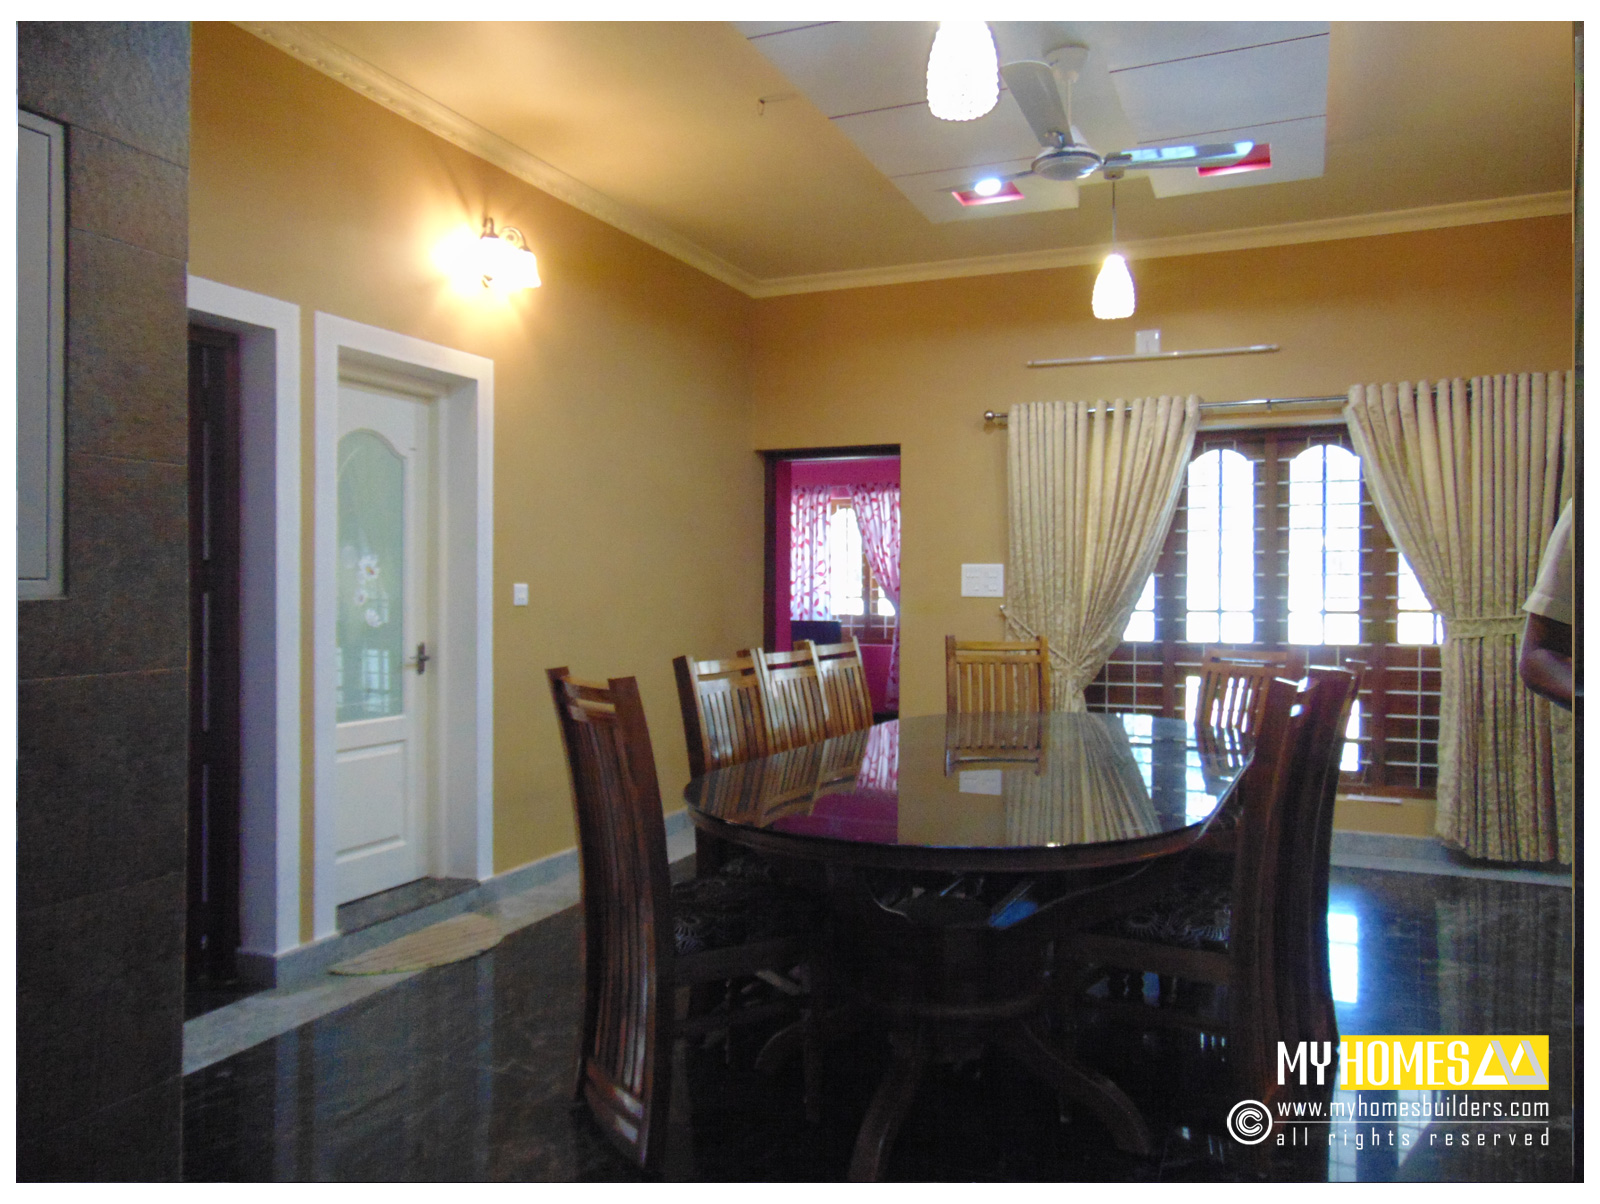 Latest ideas for dining room design kerala from my homes for Dining room ideas kerala